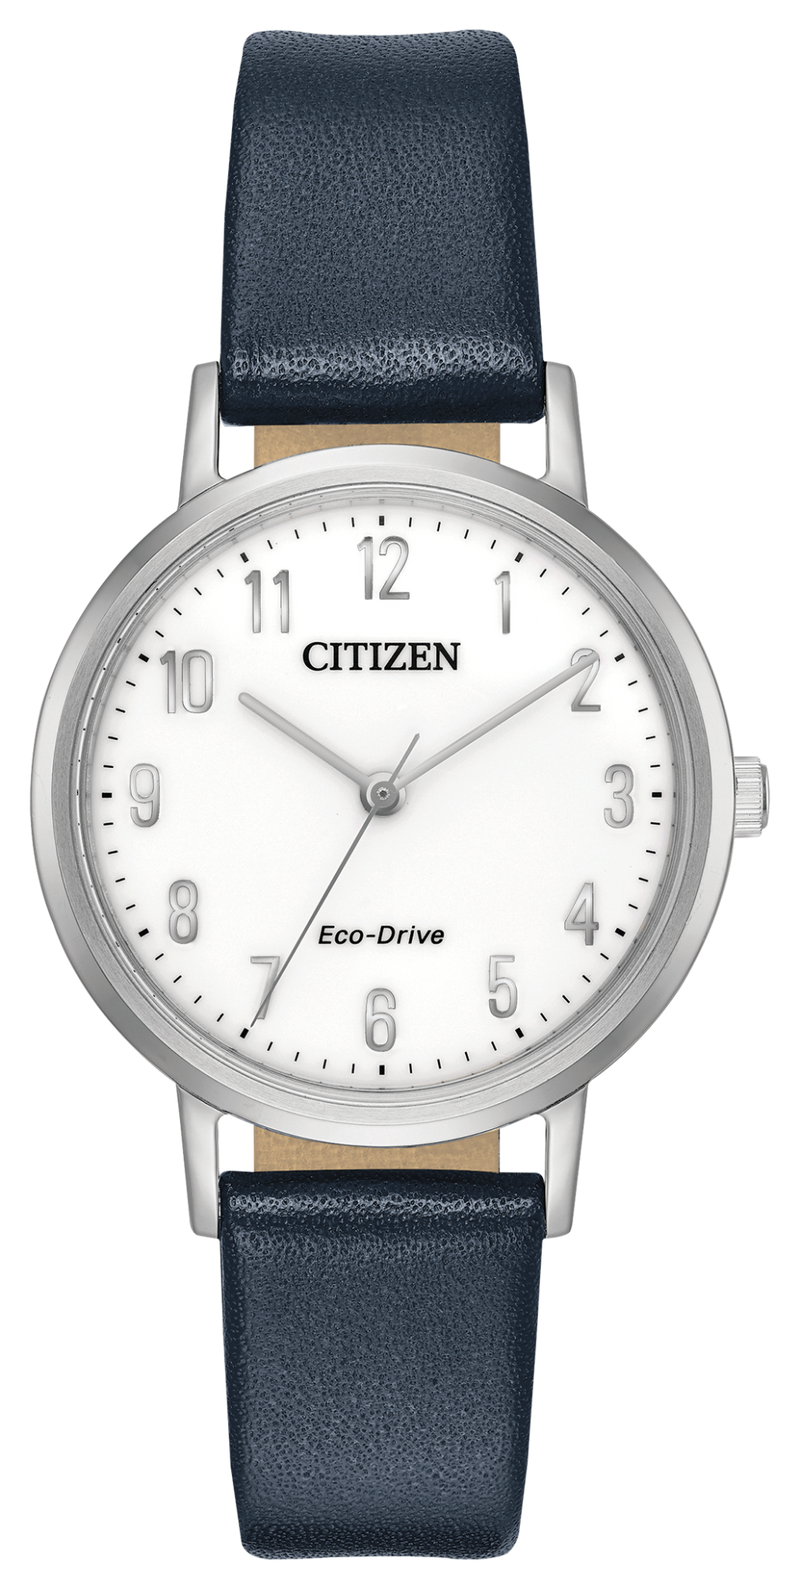 CHANDLER-Citizen Eco Drive - Crestwood Jewelers